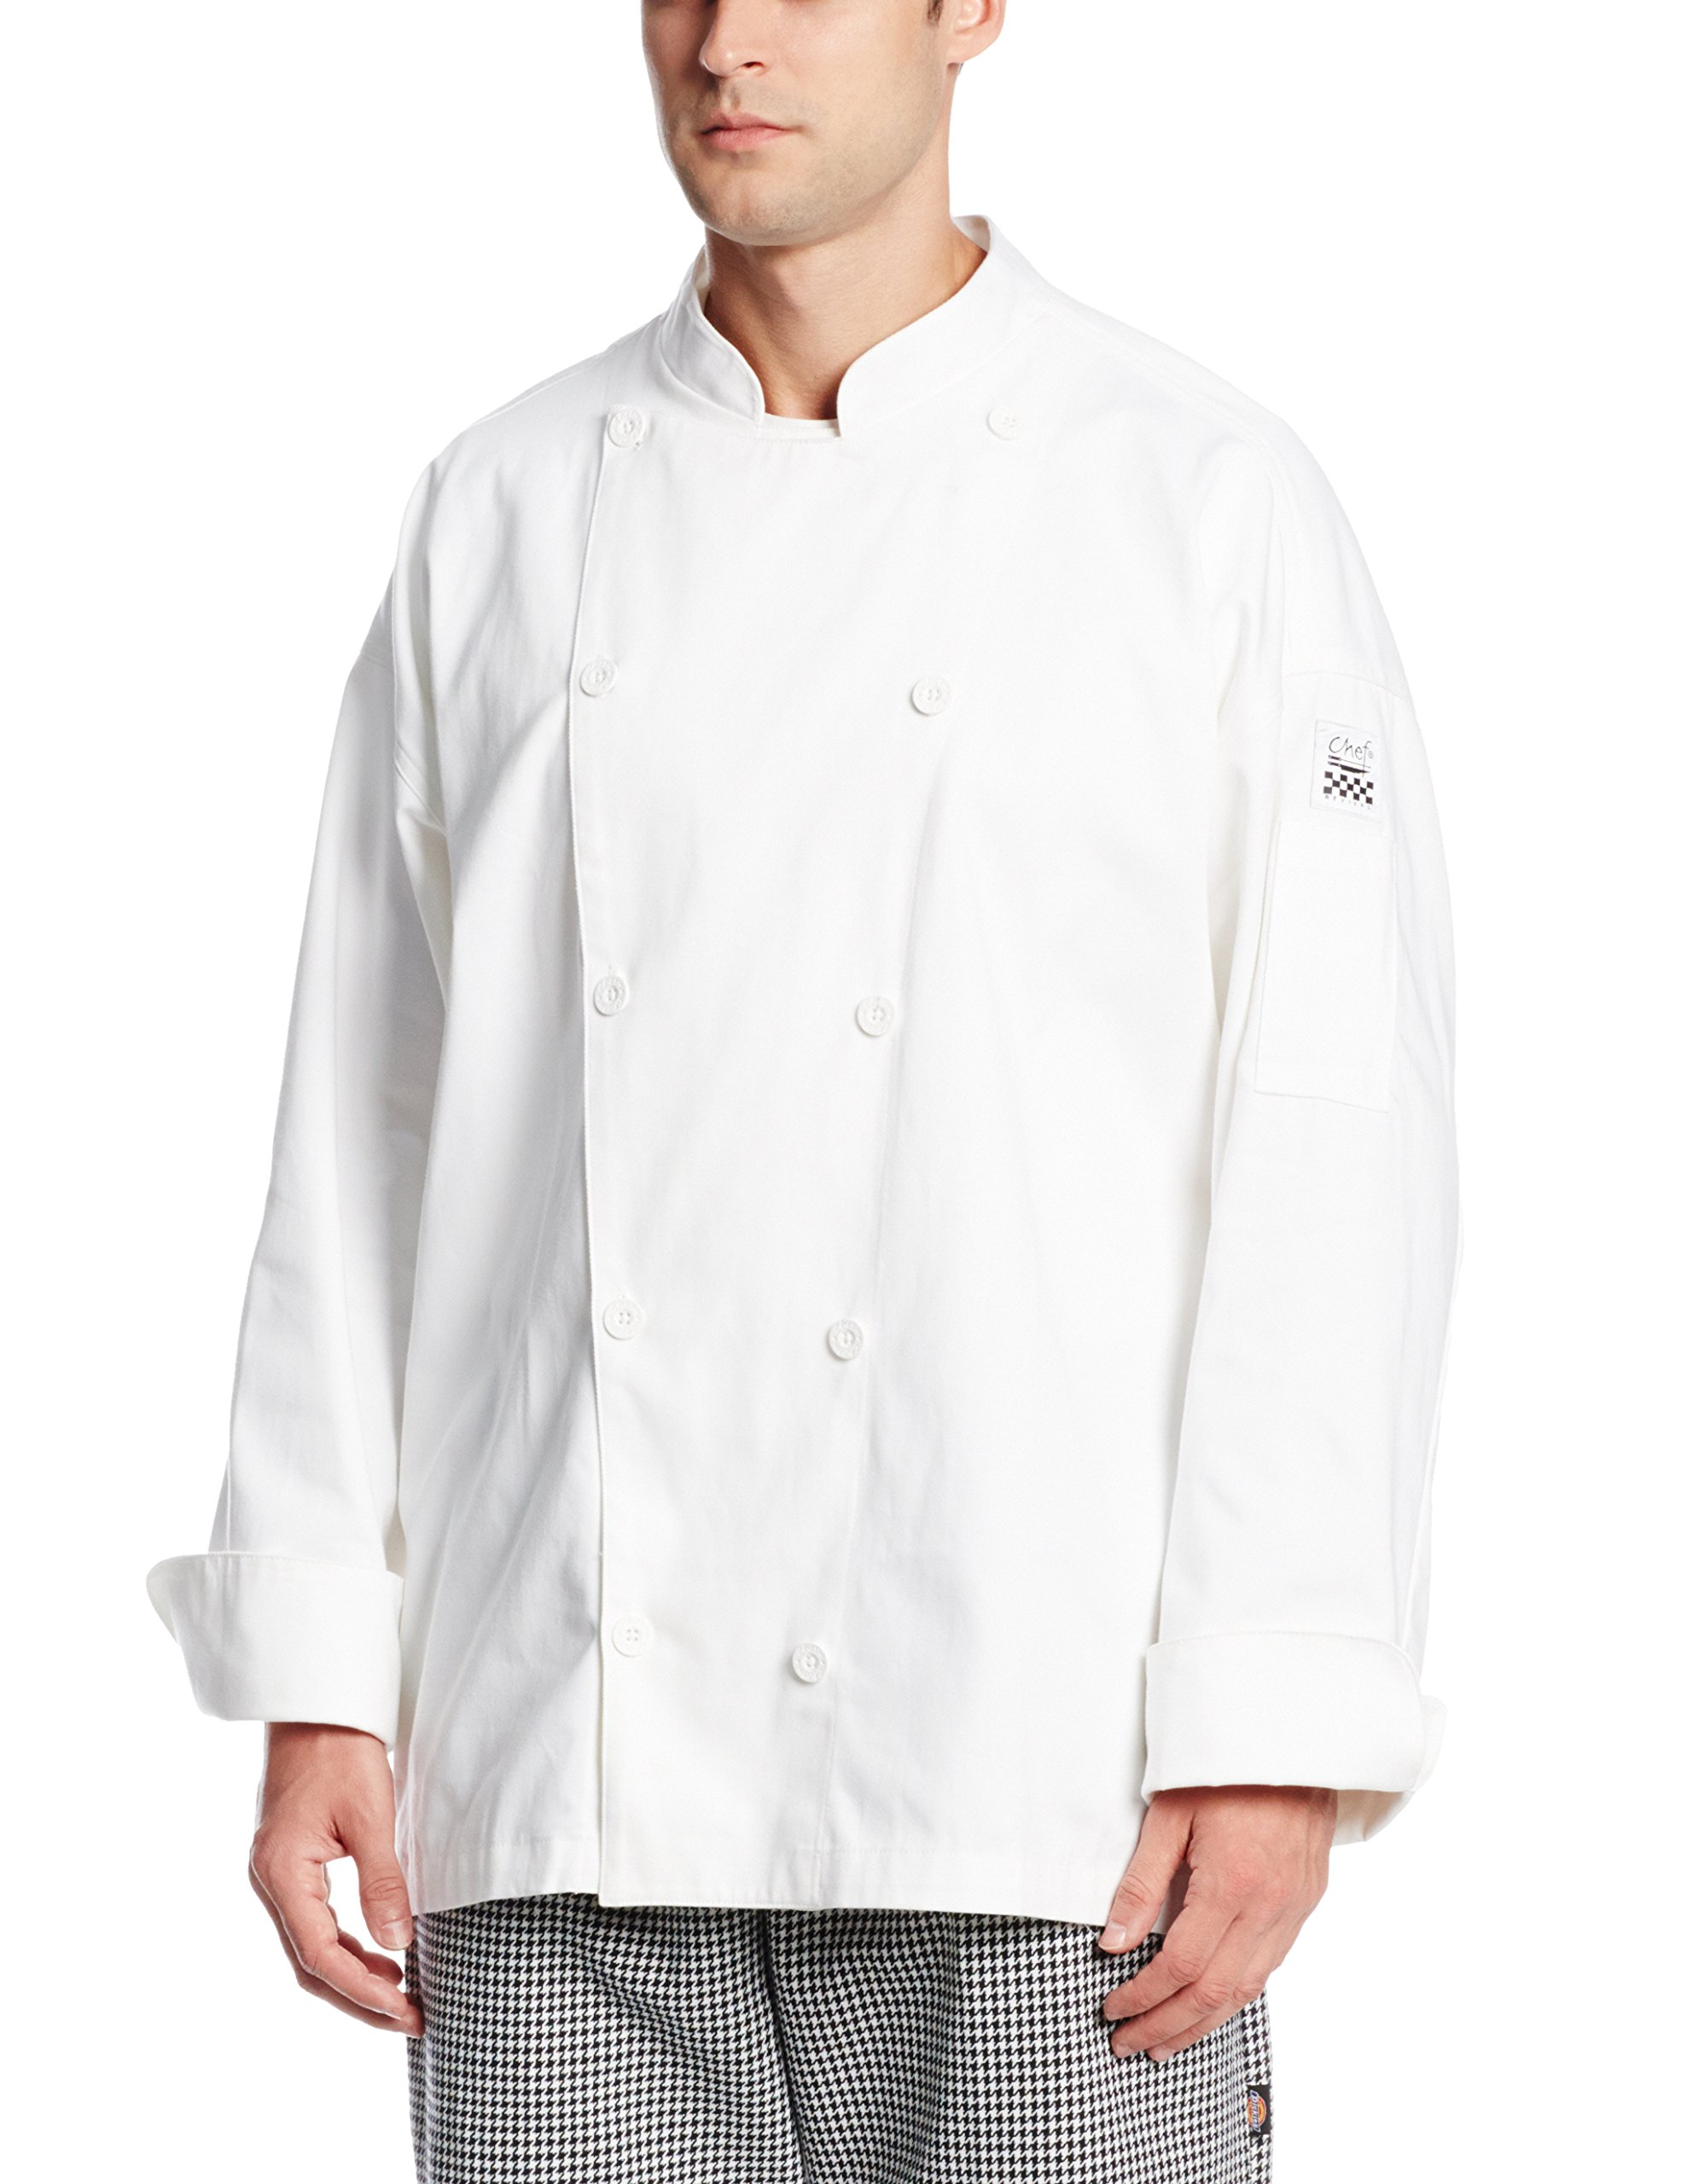 San Jamar J029 Cotton Traditional Long Sleeve Chef Jacket with Chef Logo Button, X-Small, White by San Jamar